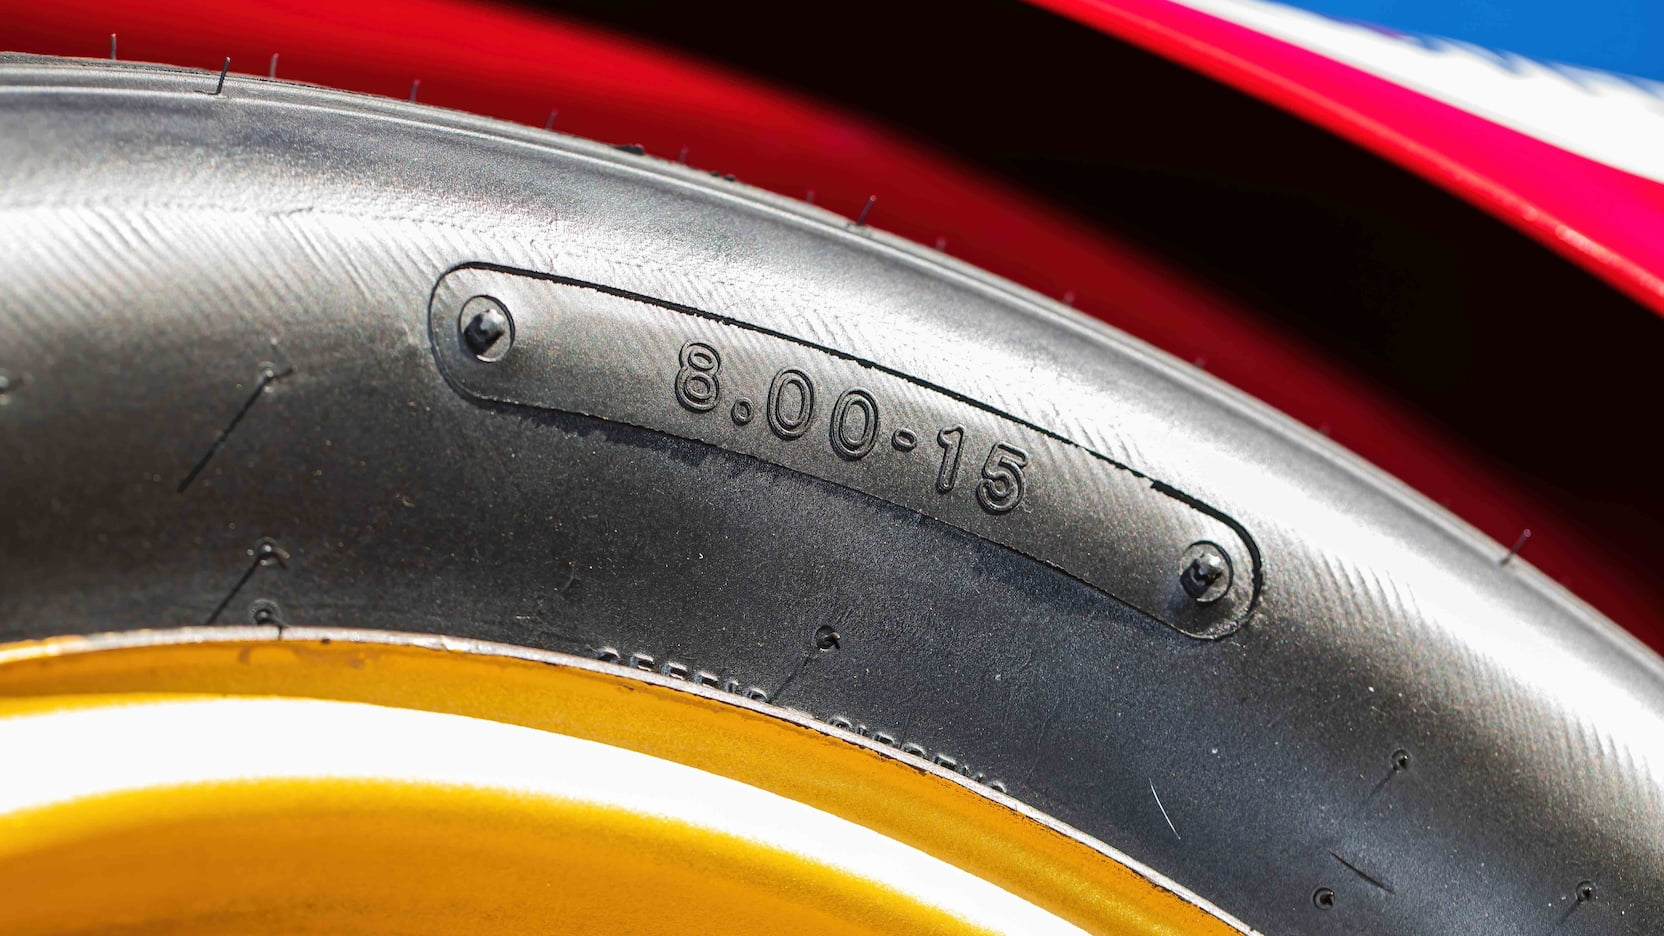 1967 Ford Mustang Holman-Moody Racer tire detail